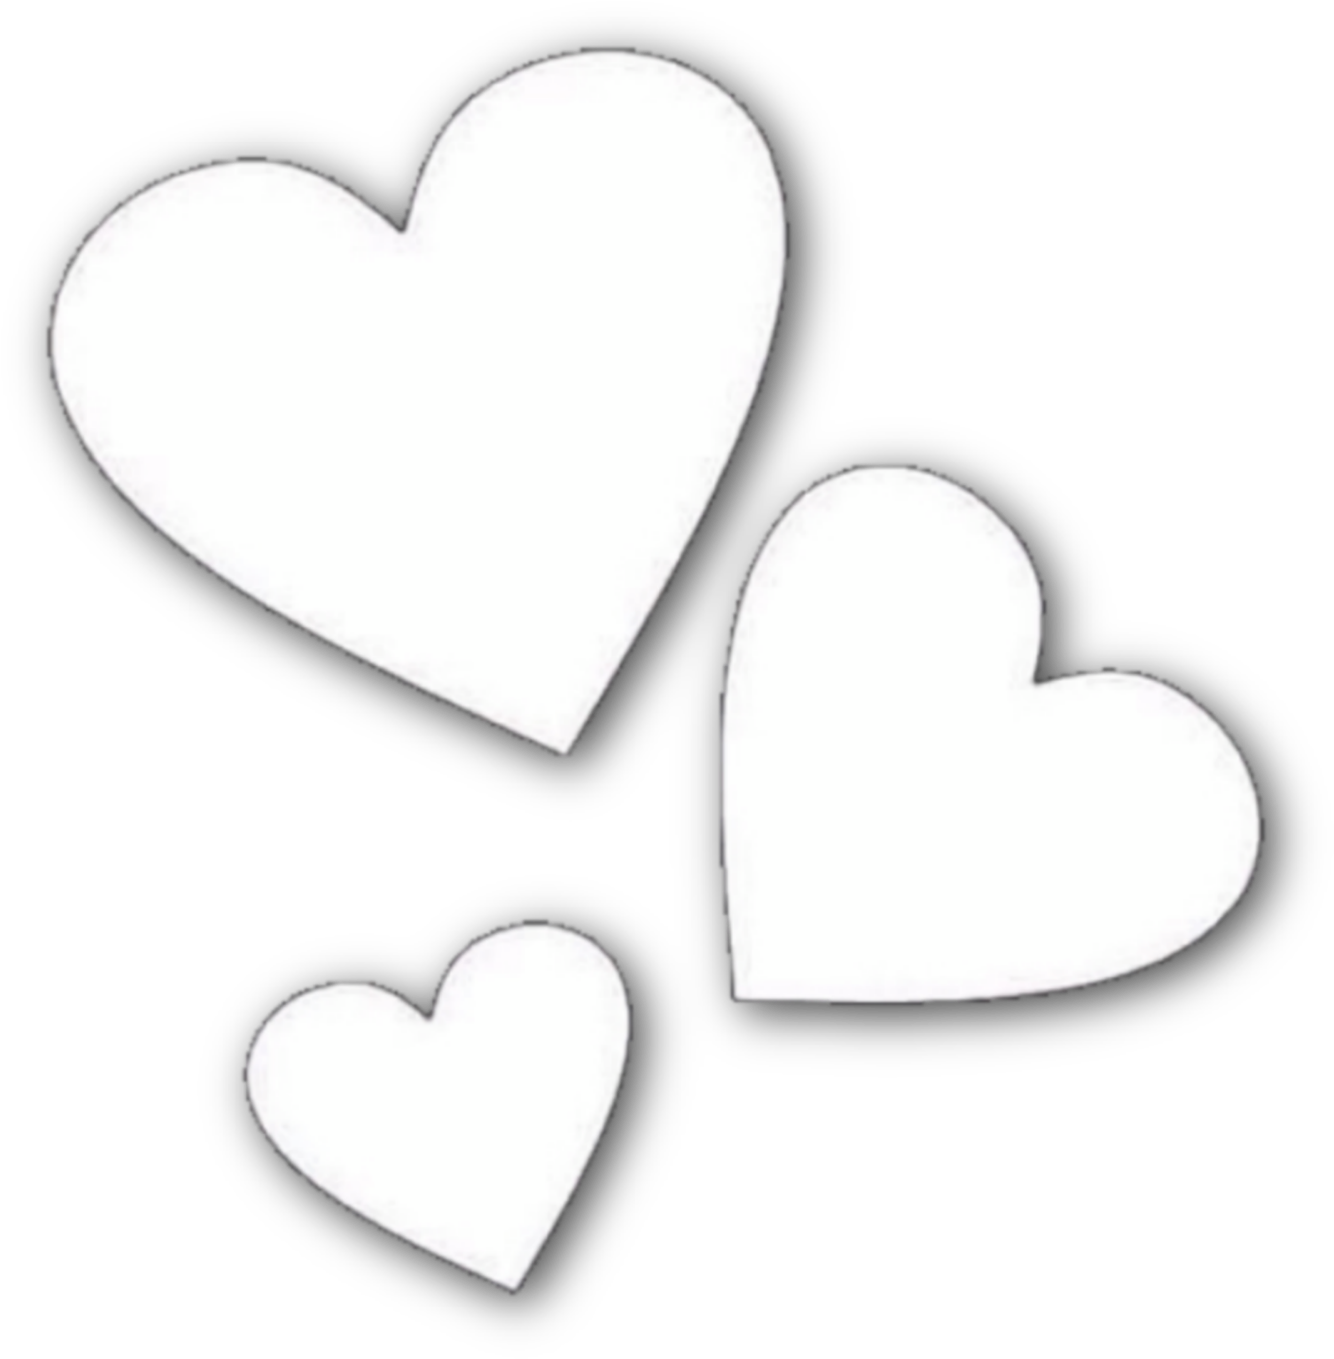 Heart Overlay And Png Image Heart Transparent Png Kindpng In 2020 Heart Overlay Overlays Png Images For Editing